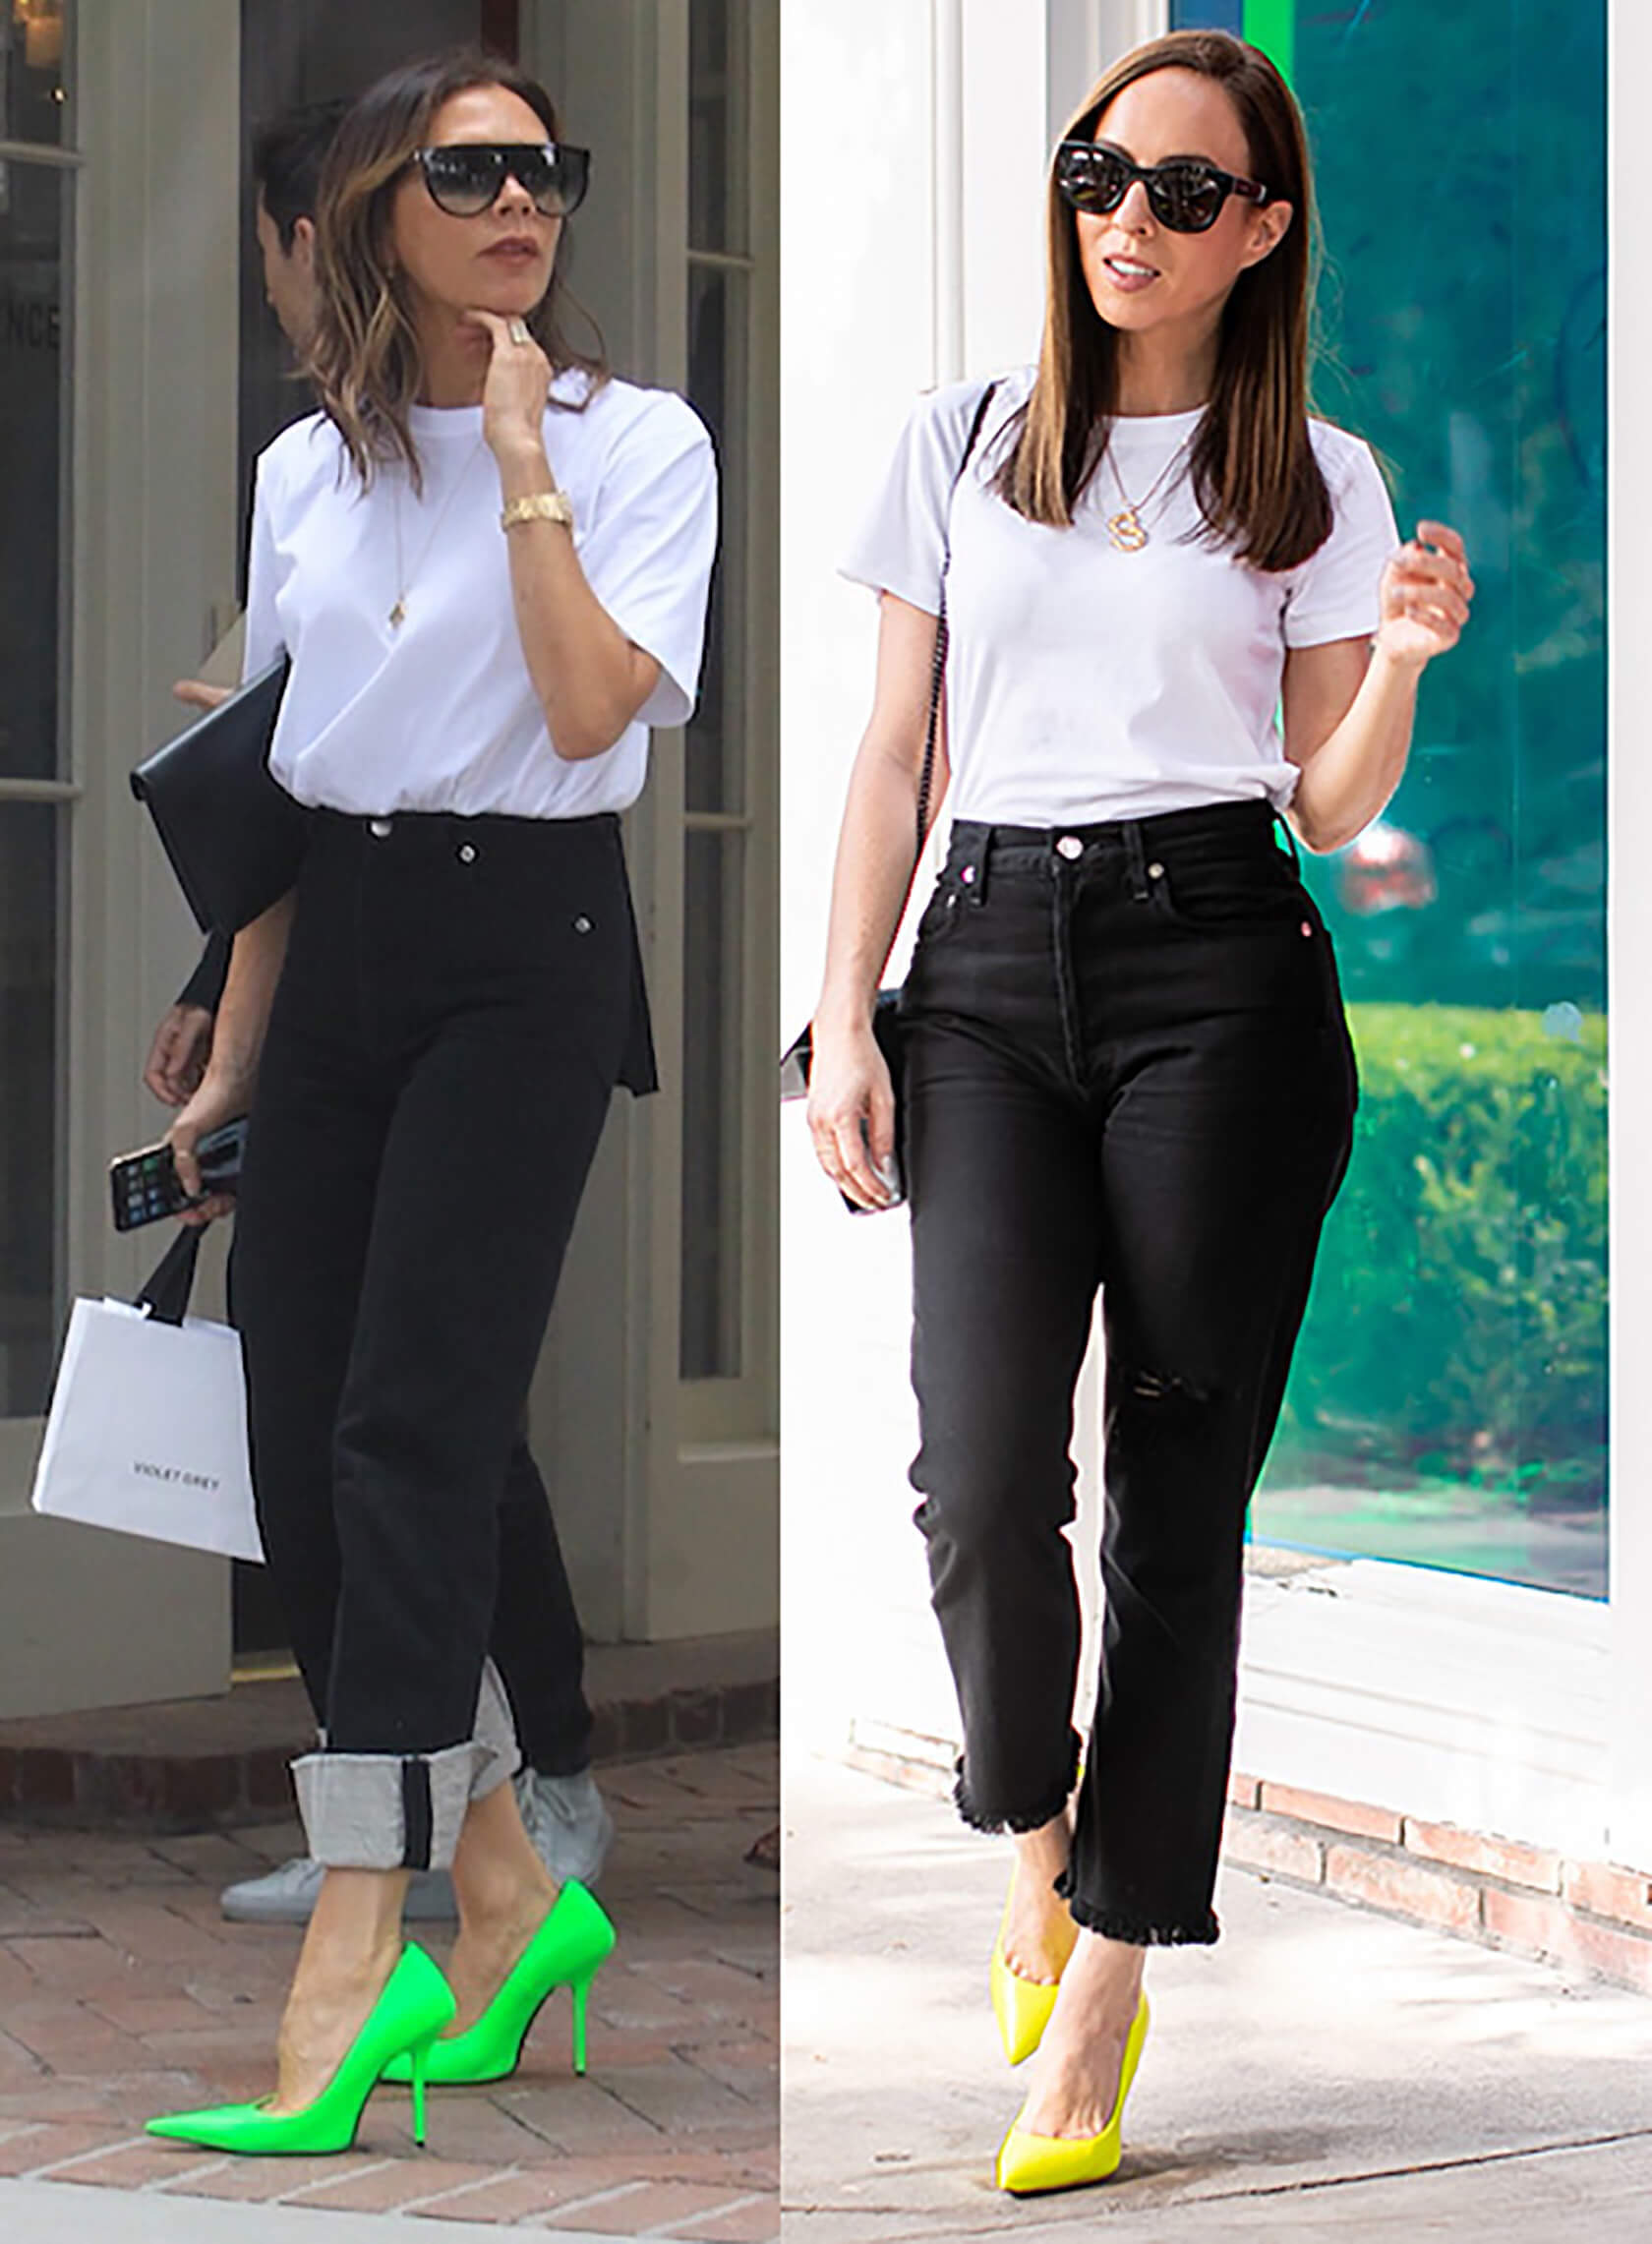 Sydne Style shows how to dress like Victoria Beckham in white tee black jeans and neon shoes